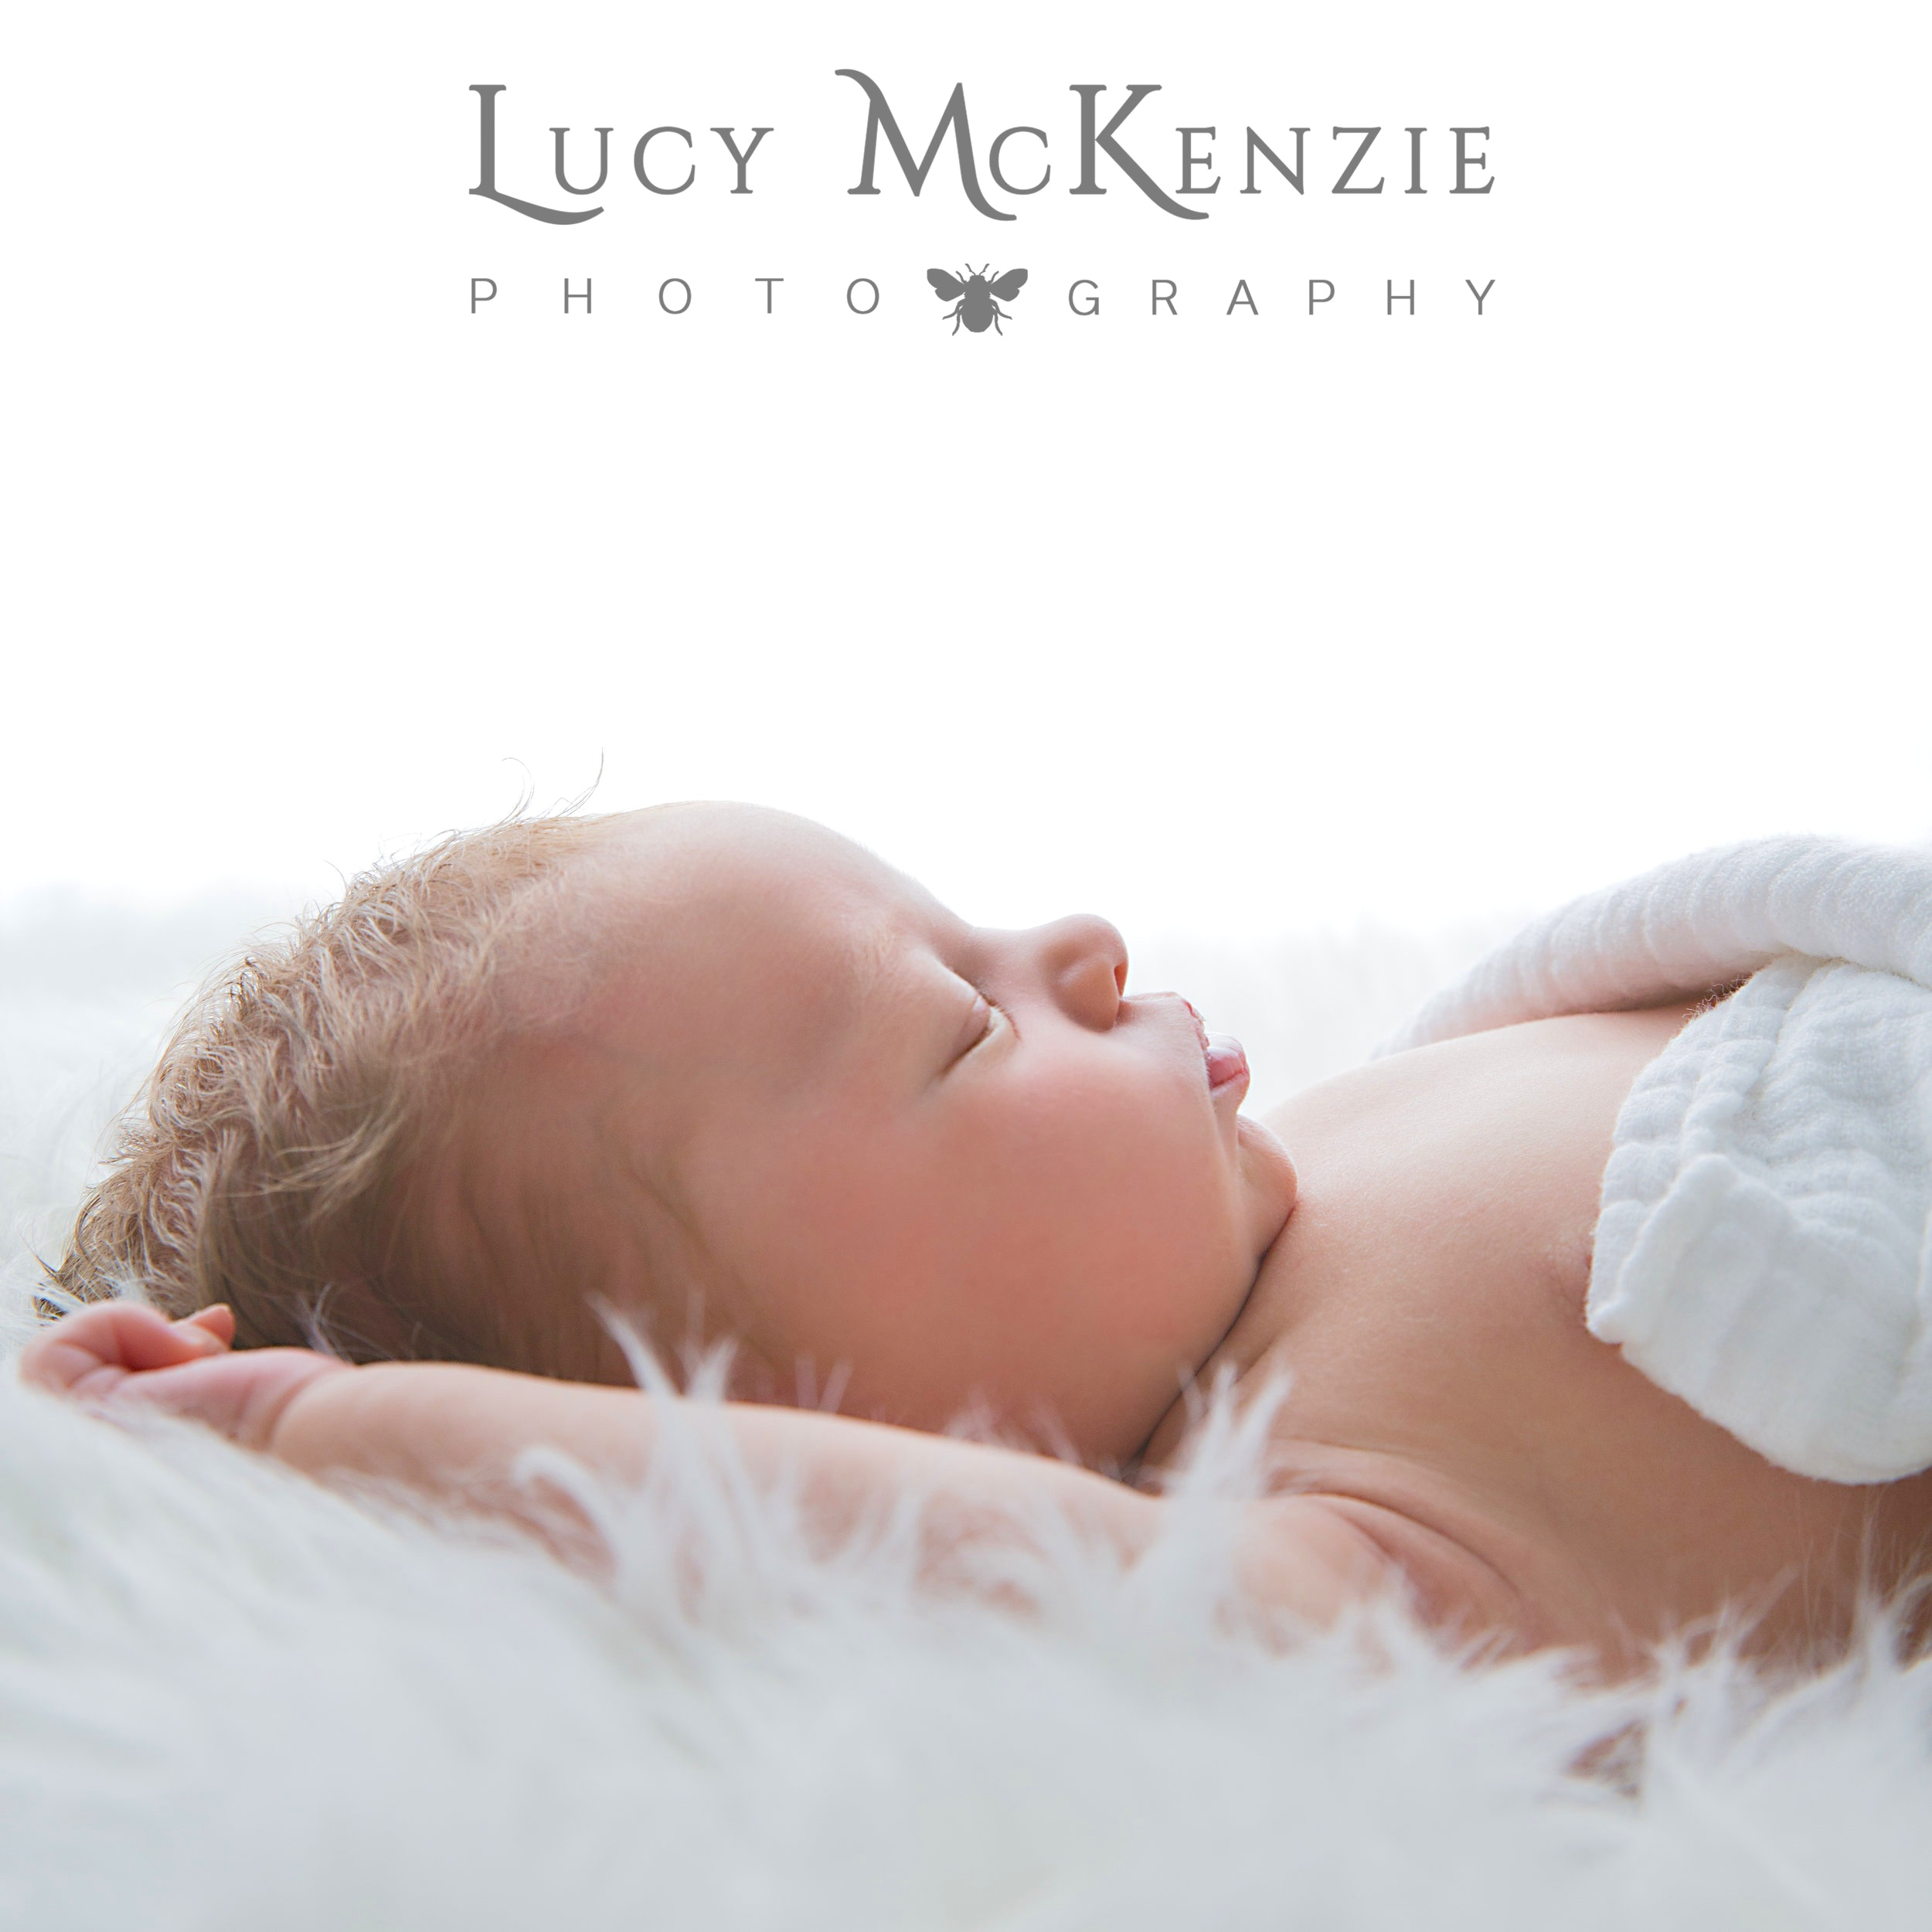 Newborn Studio Session - £200 - Up to 4 hour studio photography sessionTime allows us to be relaxed and accommodate feedsNewborn babies under three weeks old, including parent, sibling and family posesIncludes use of the range of studio blankets, wraps and flokati rugsClick here for more information